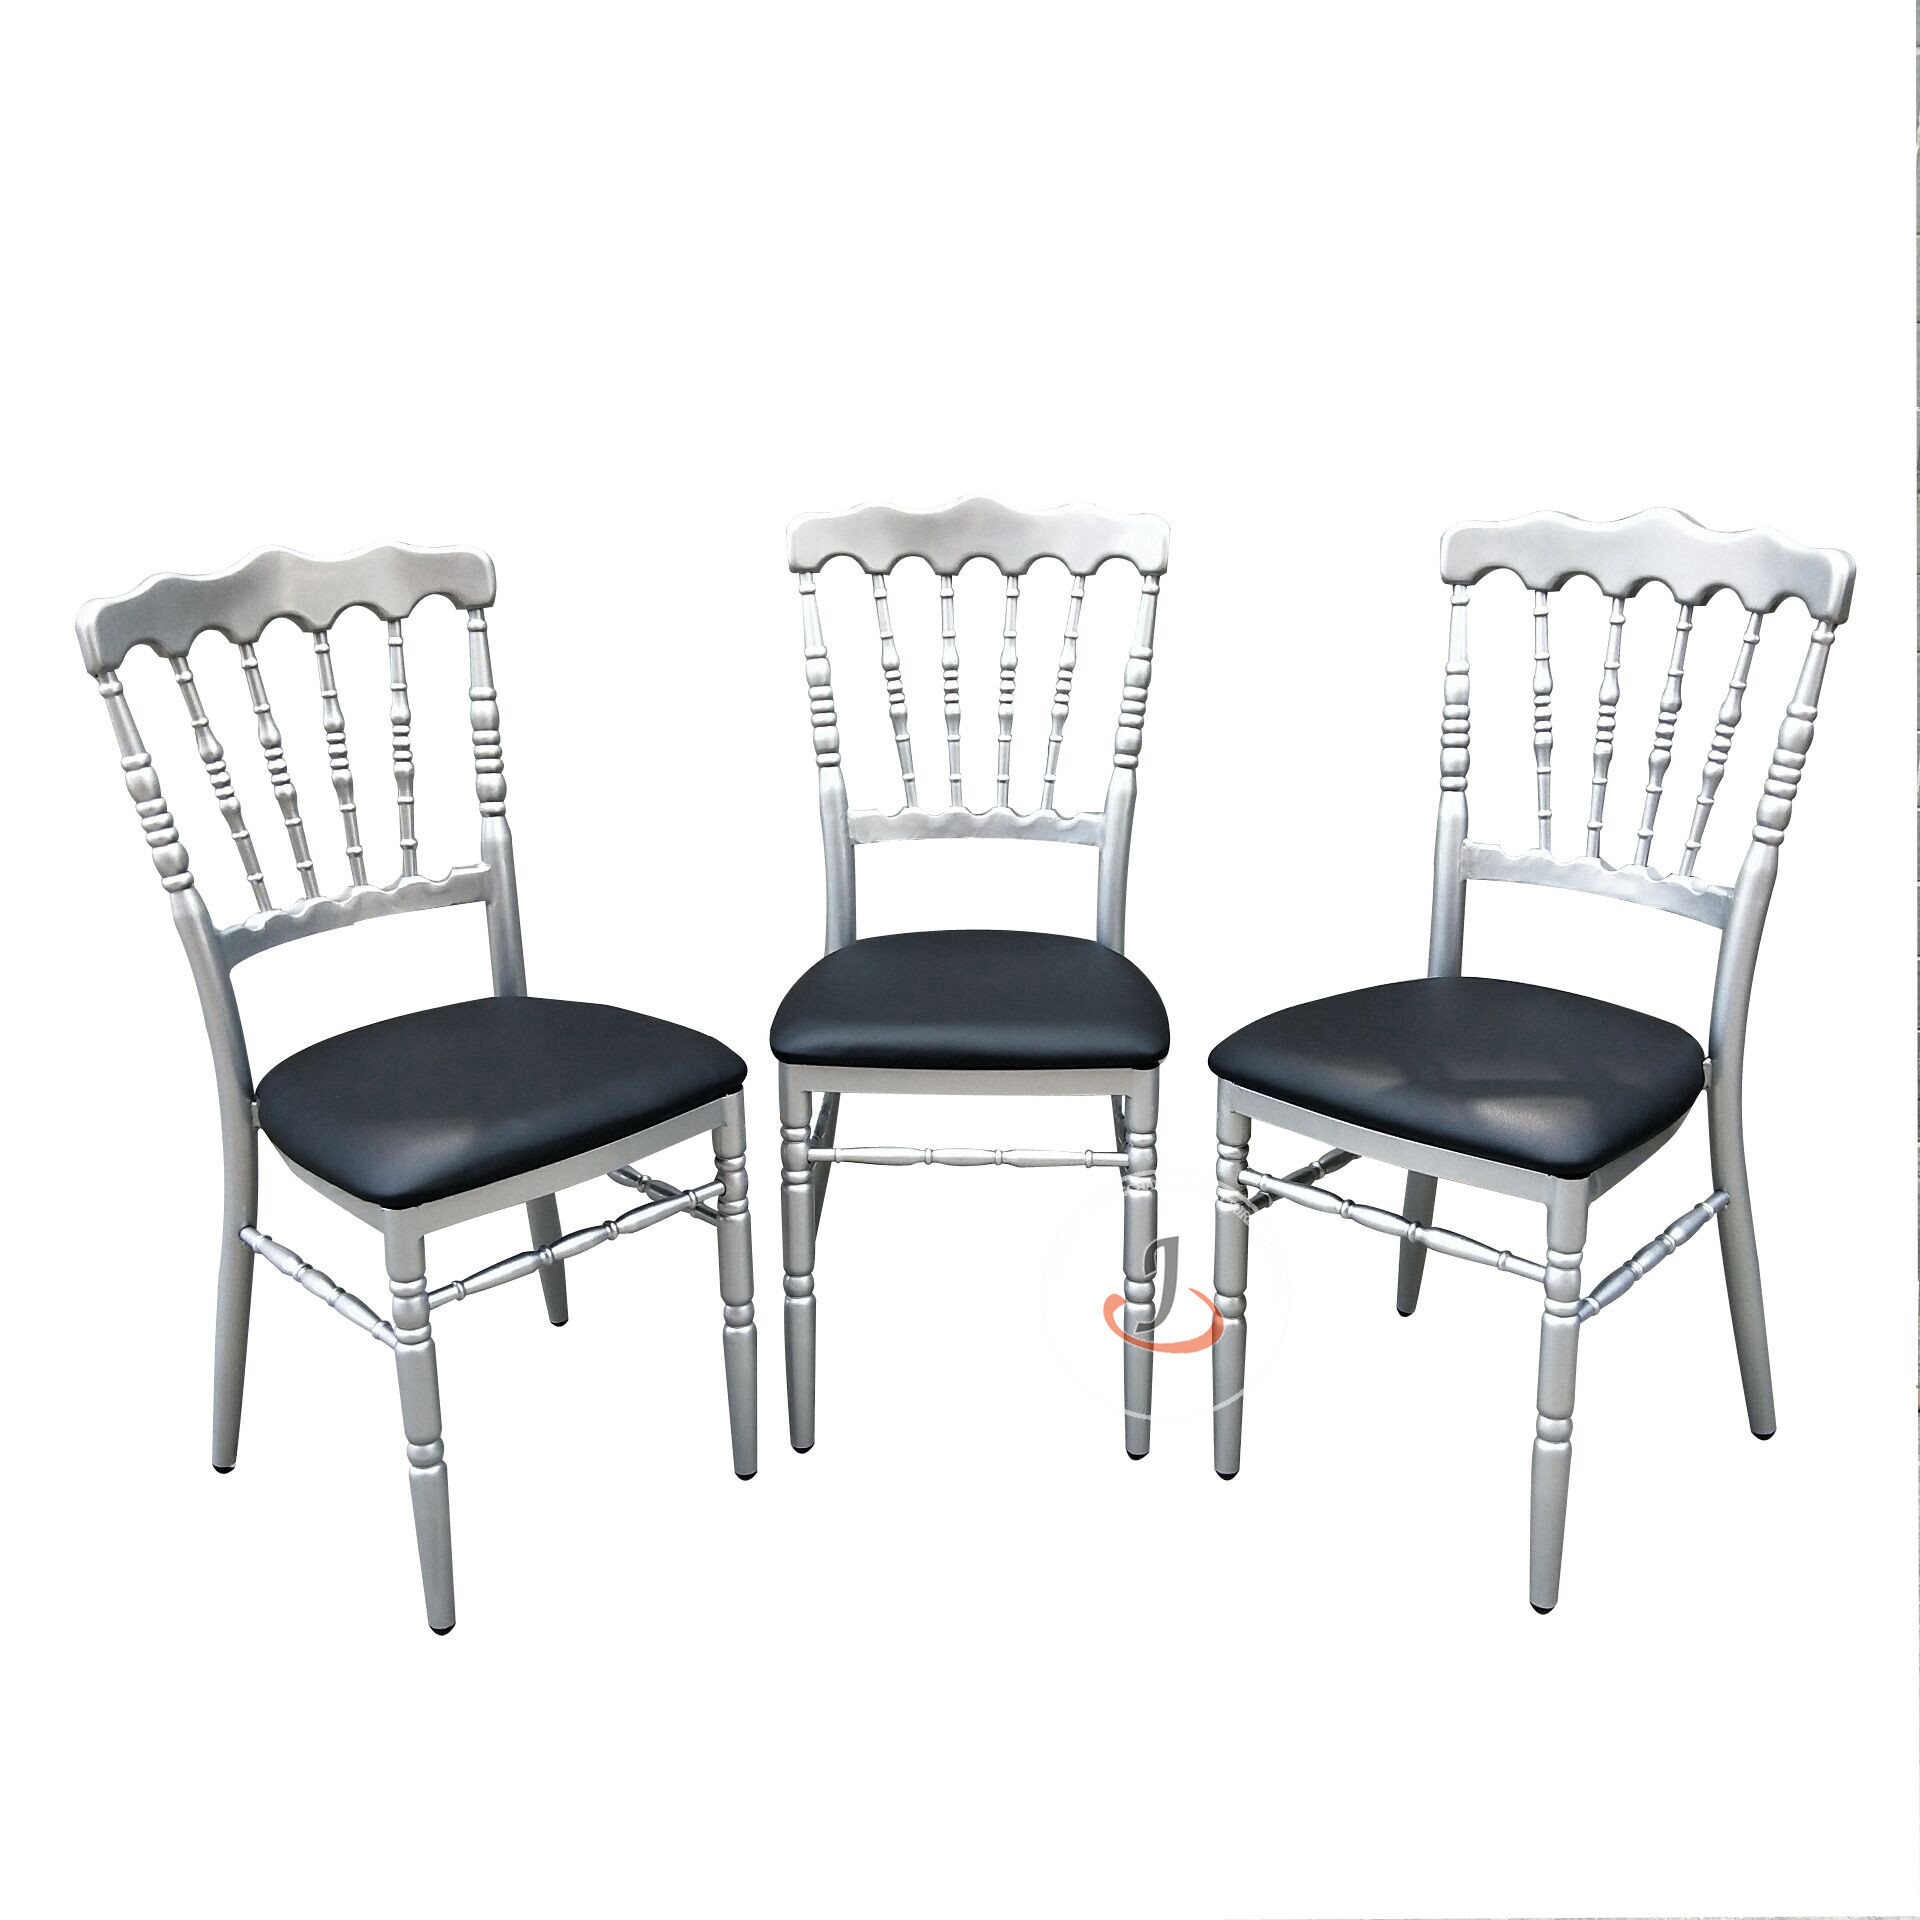 Napoleon Chairs SF-ZJ04 Featured Image